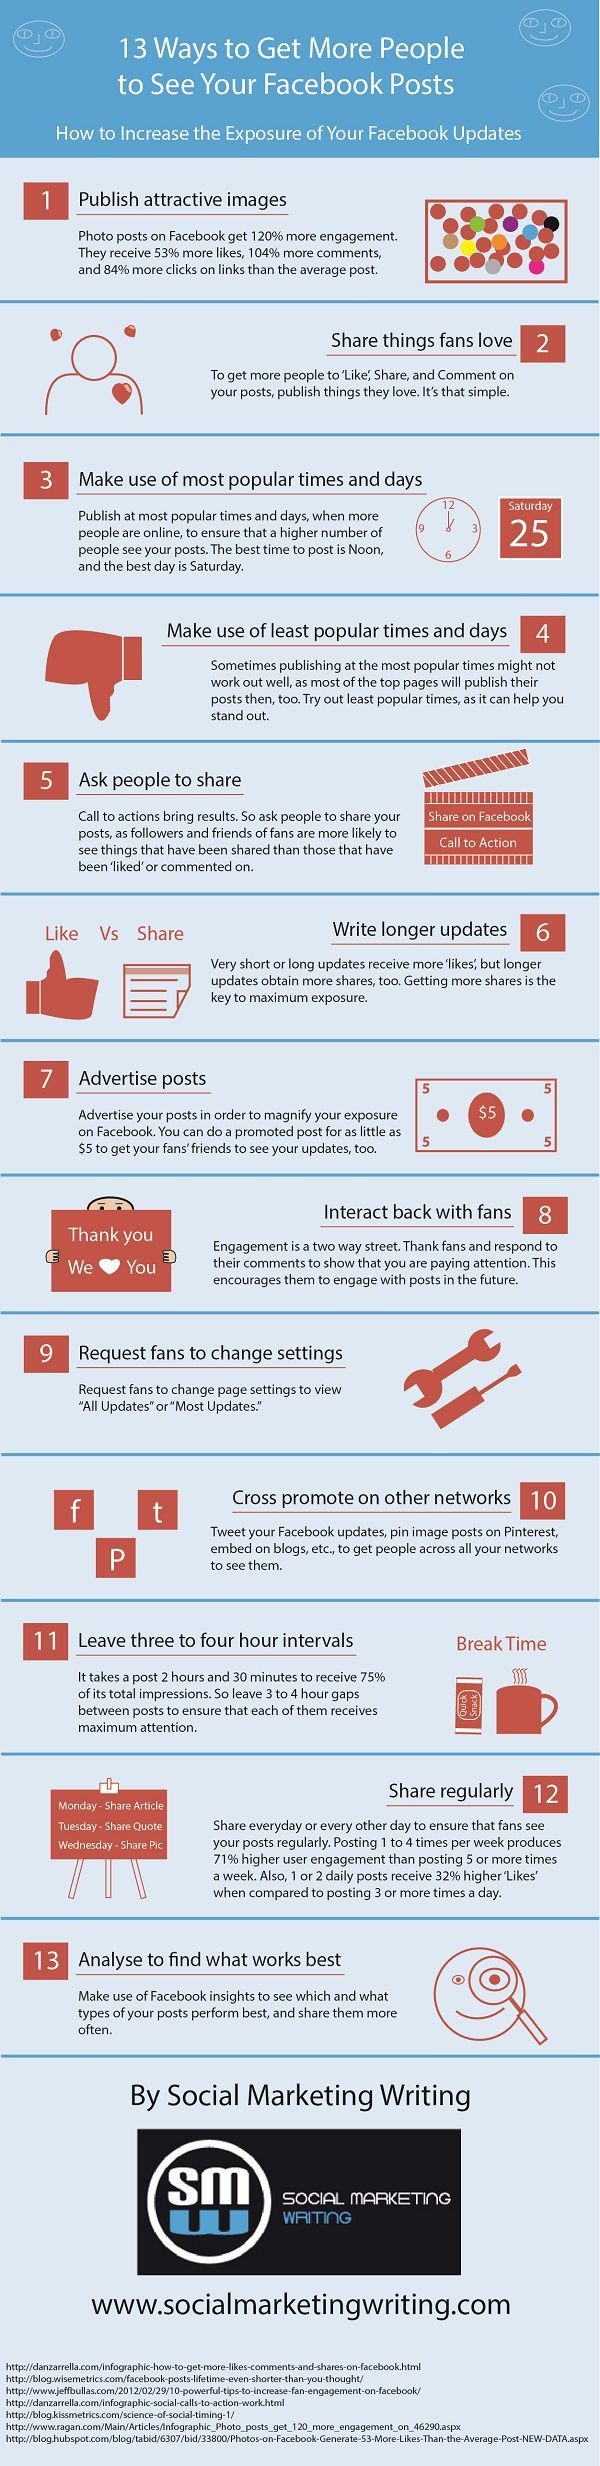 13 Ways to Boost Your Facebook Posts Exposure [Infographic] -